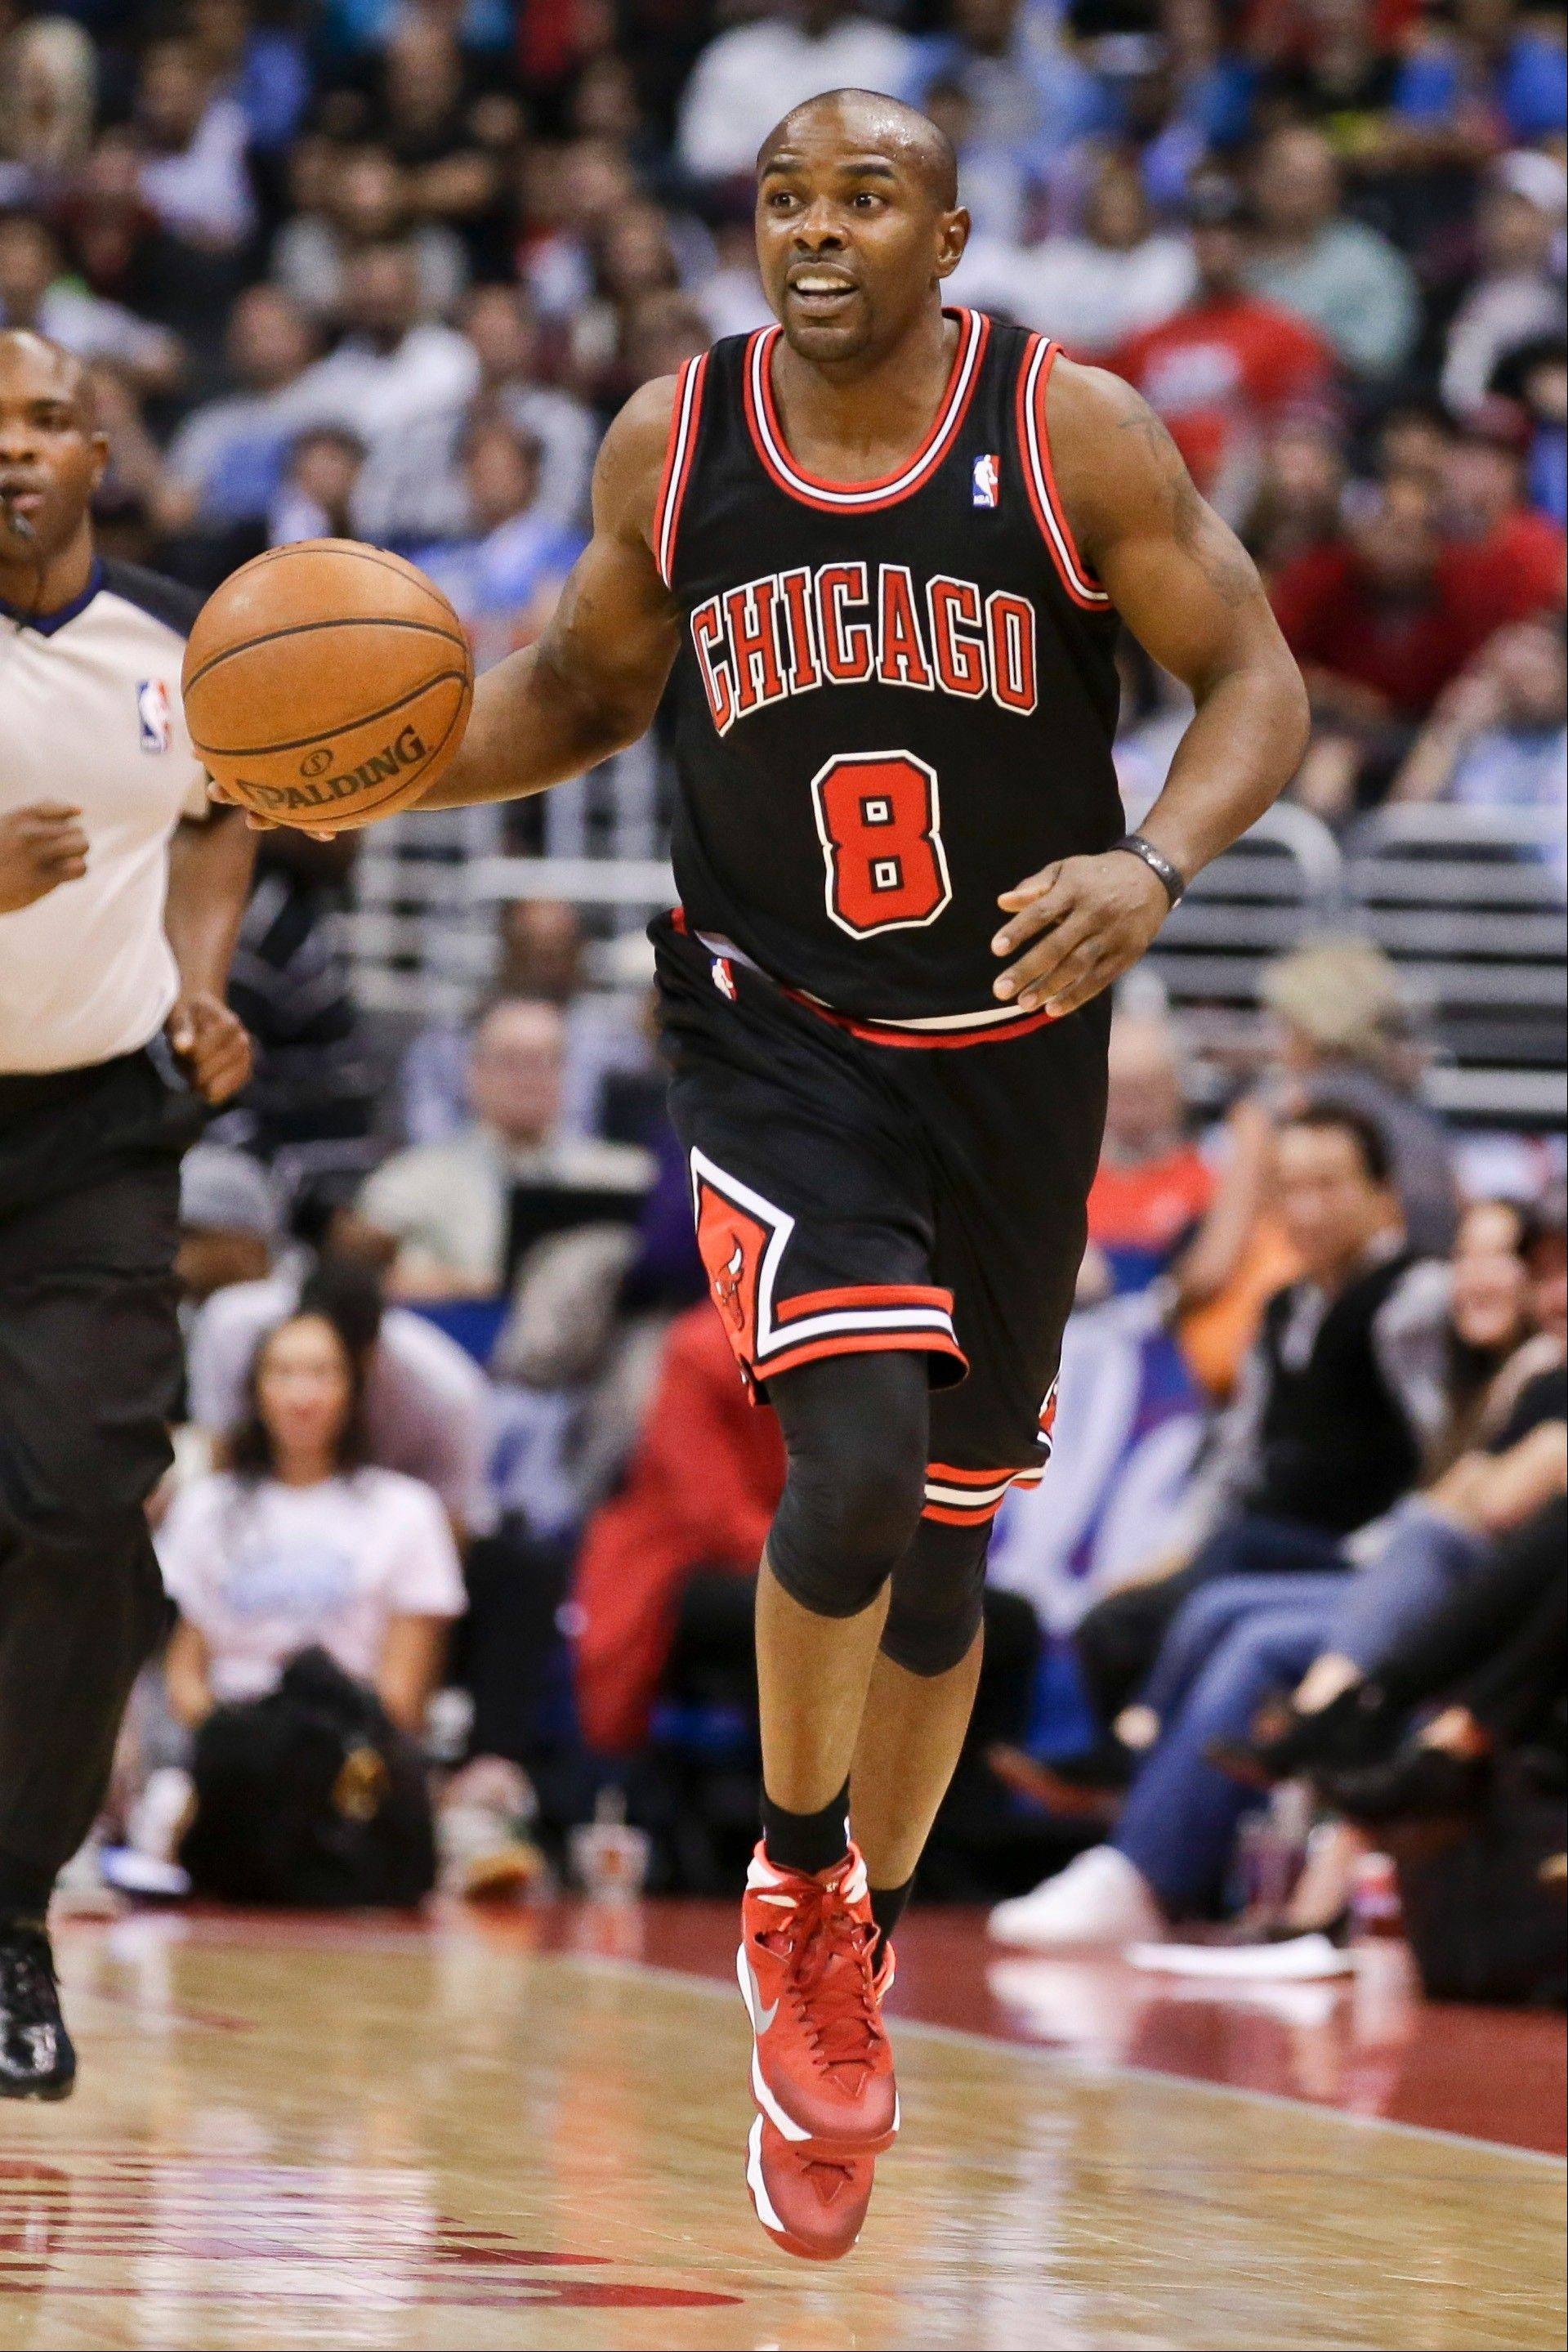 Mike James, a veteran guard who played in seven games for the Bulls this season, was released by the team on Monday. The Bulls added guard D.J. Augustin to the roster last Friday.